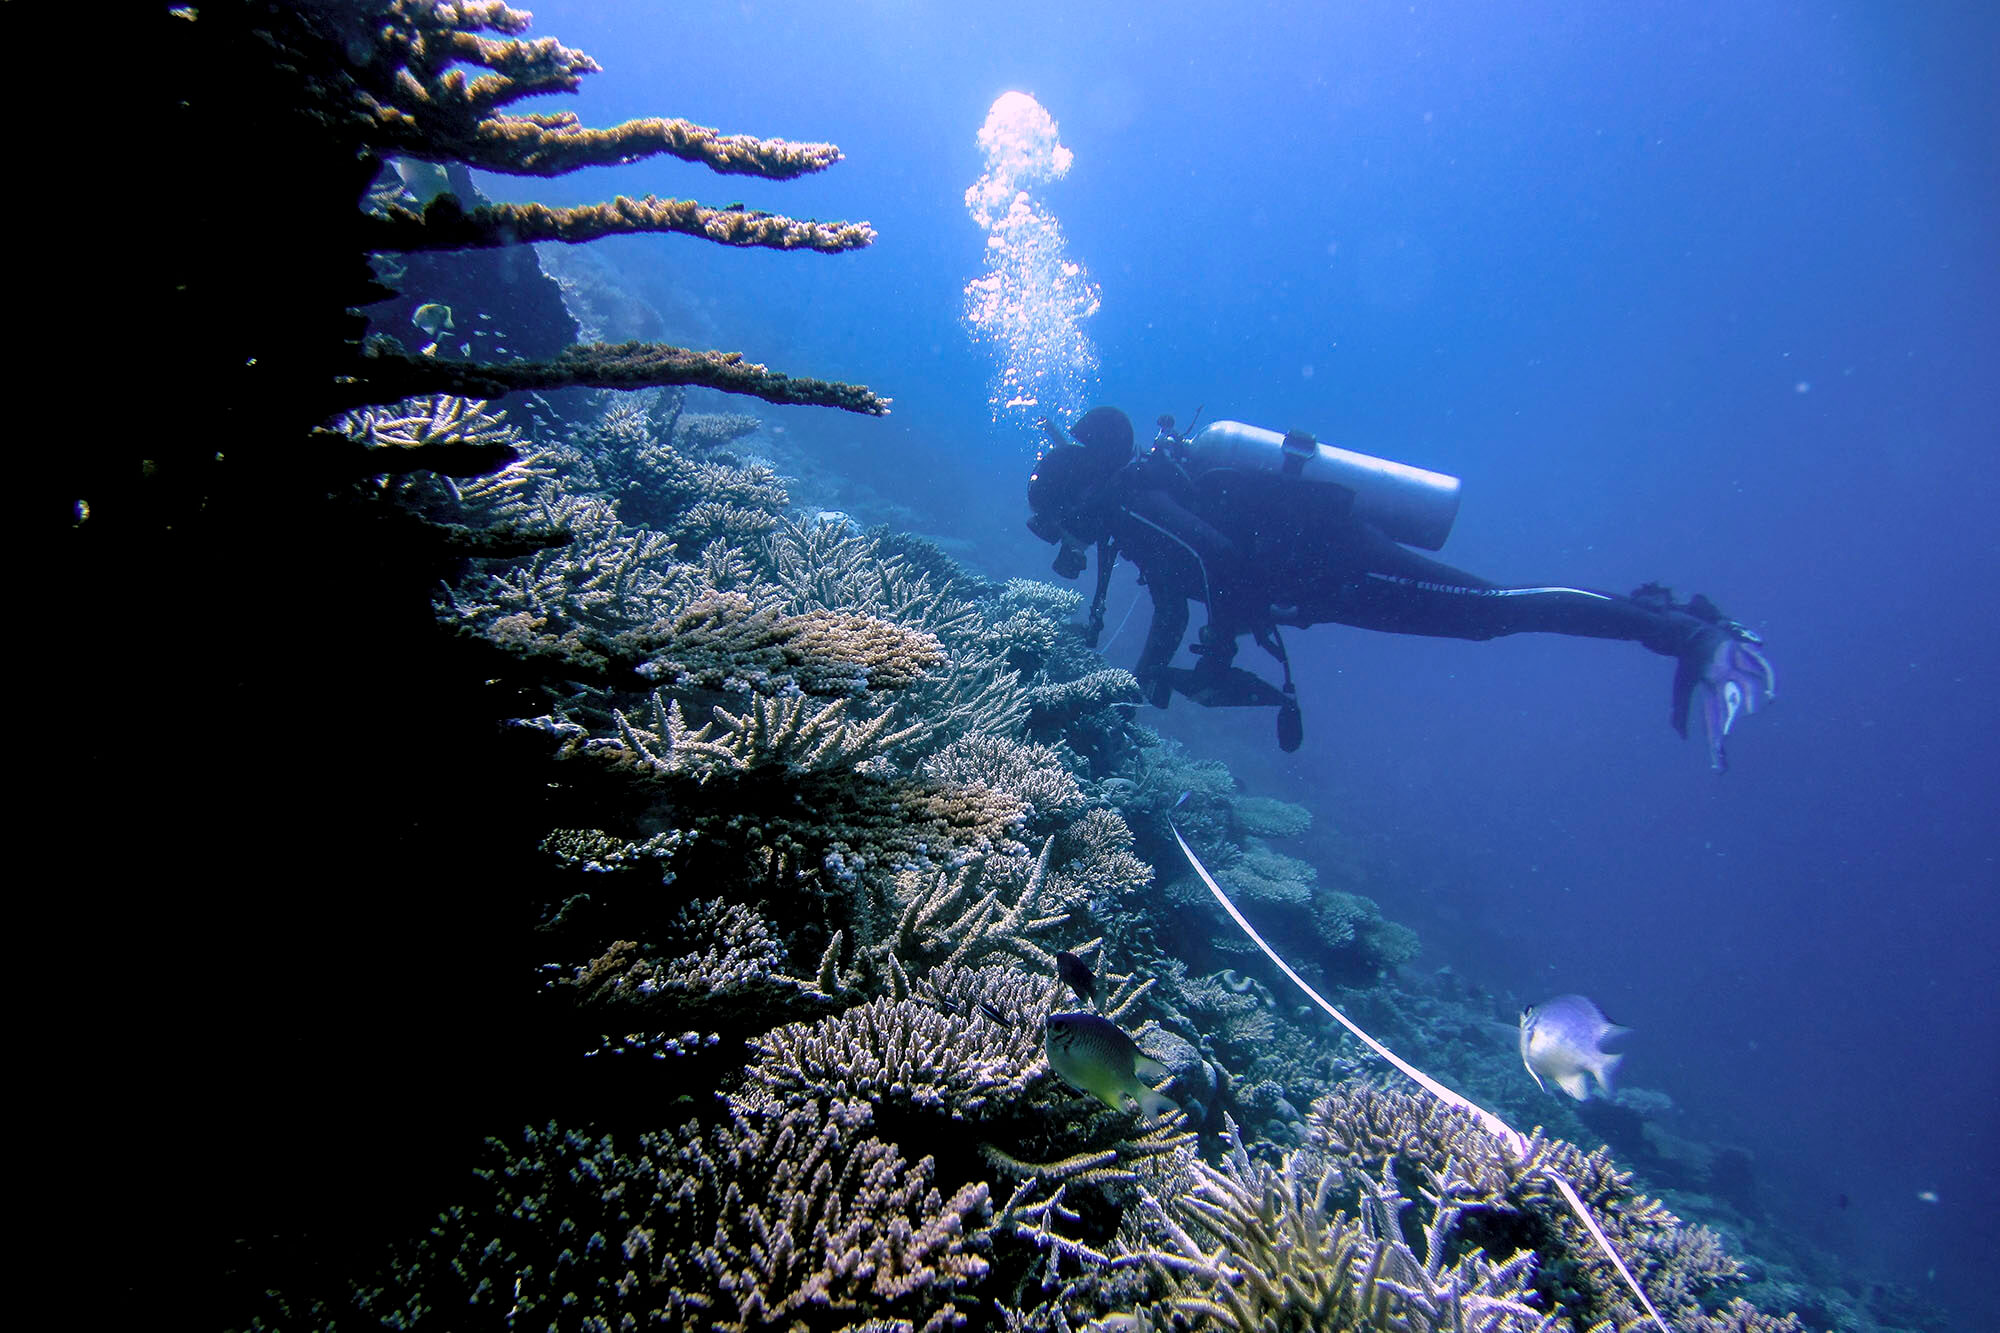 Zoology academic diving to examine corals